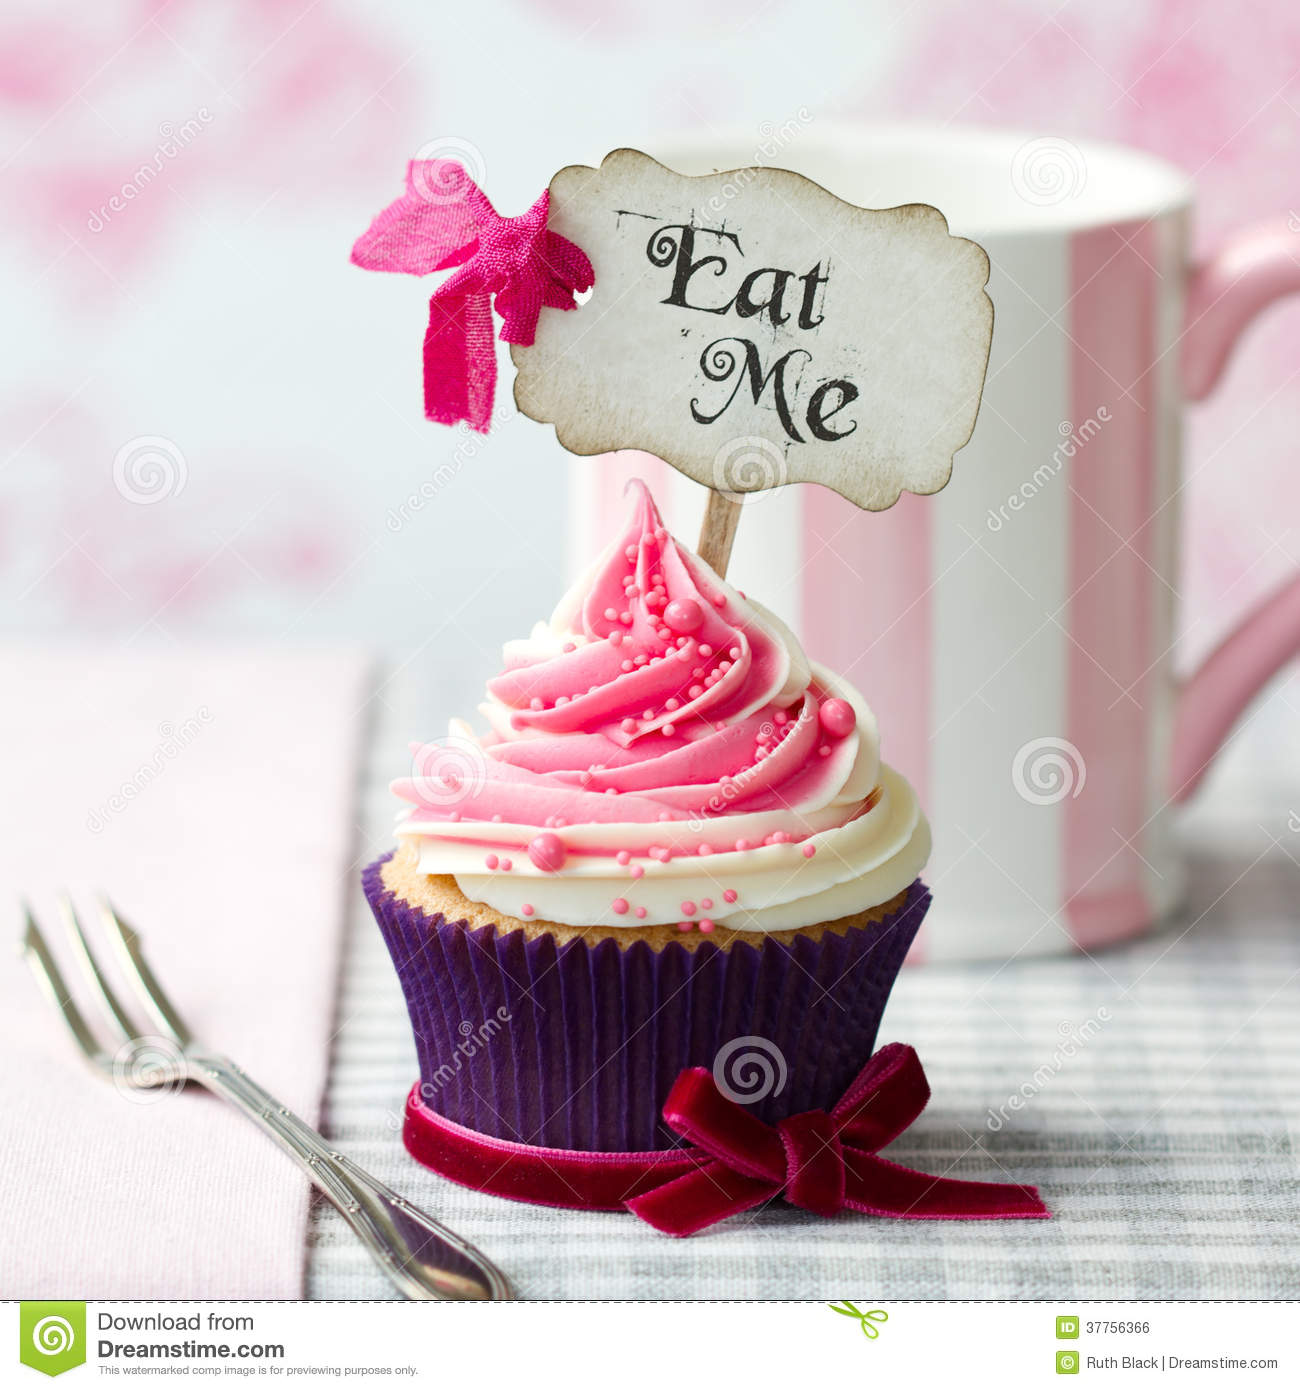 Eat Me Cupcake Royalty Free Stock Image  Image 37756366